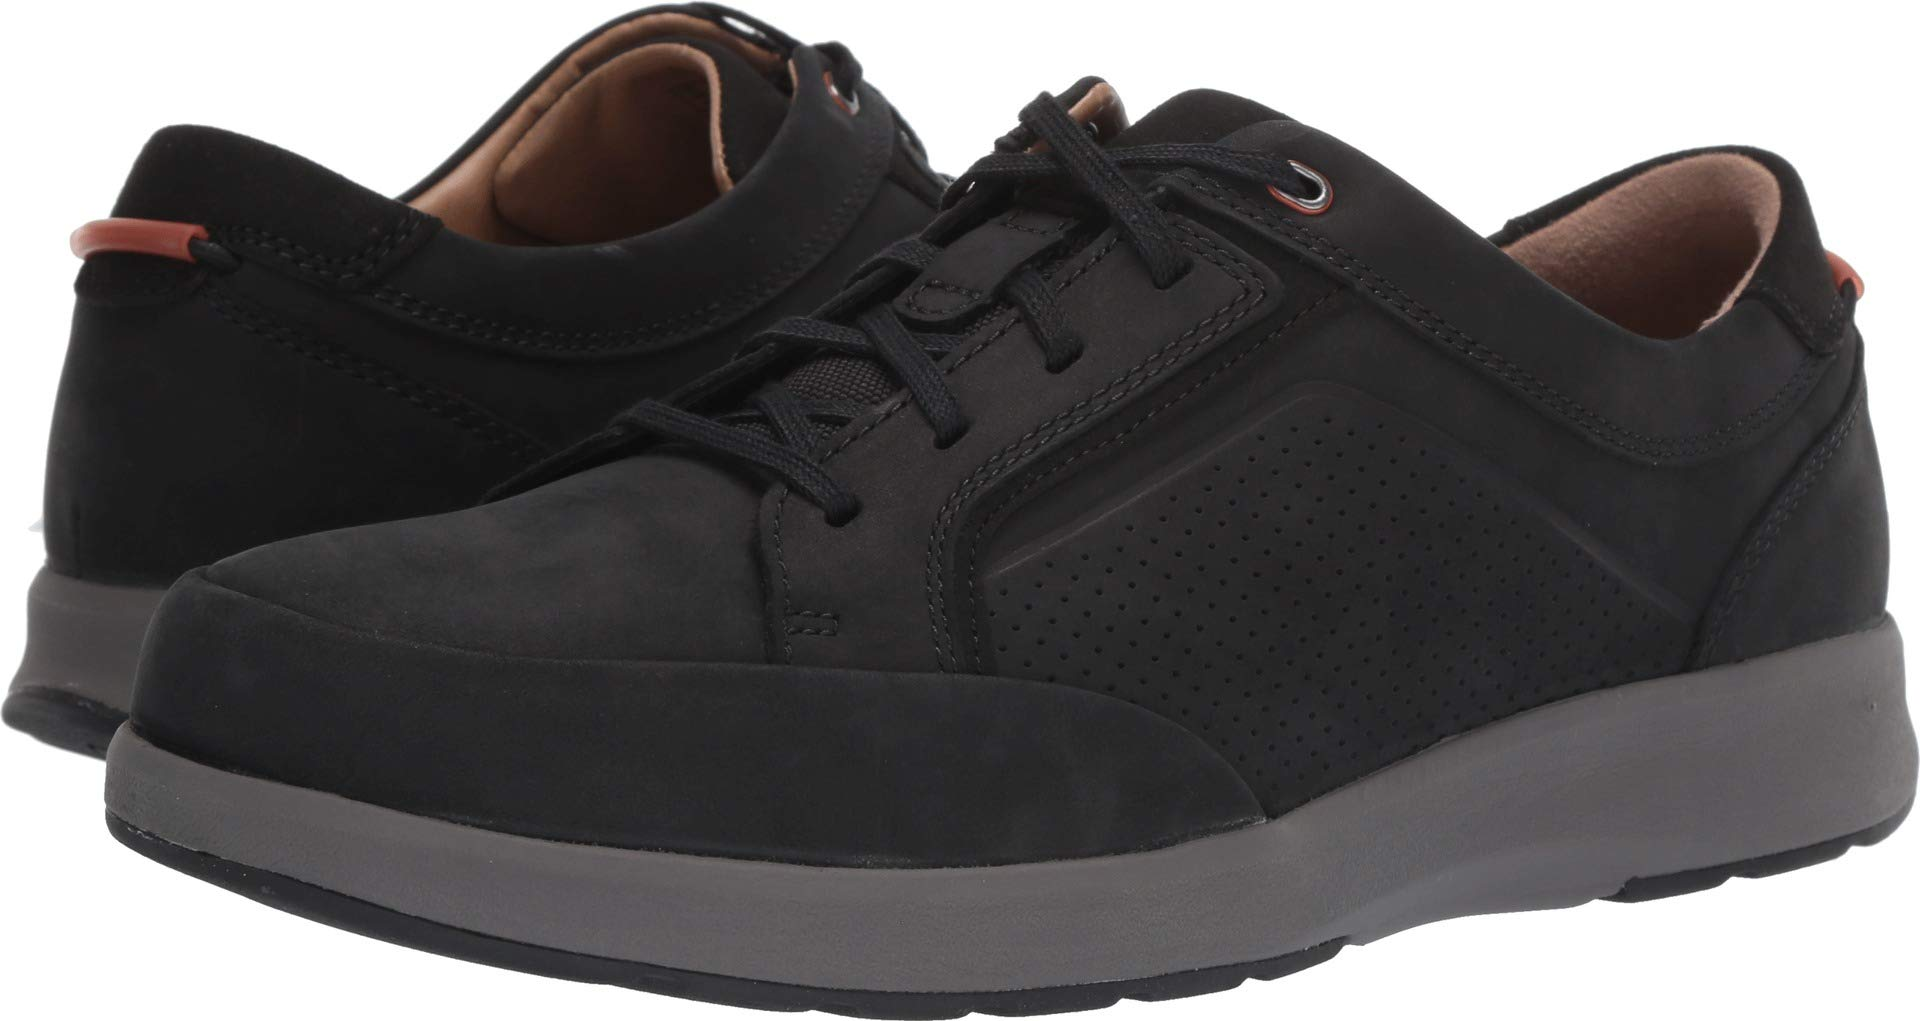 CLARKS Men's, Un Trail Form Casual Black Nubuck 9.5 M by CLARKS